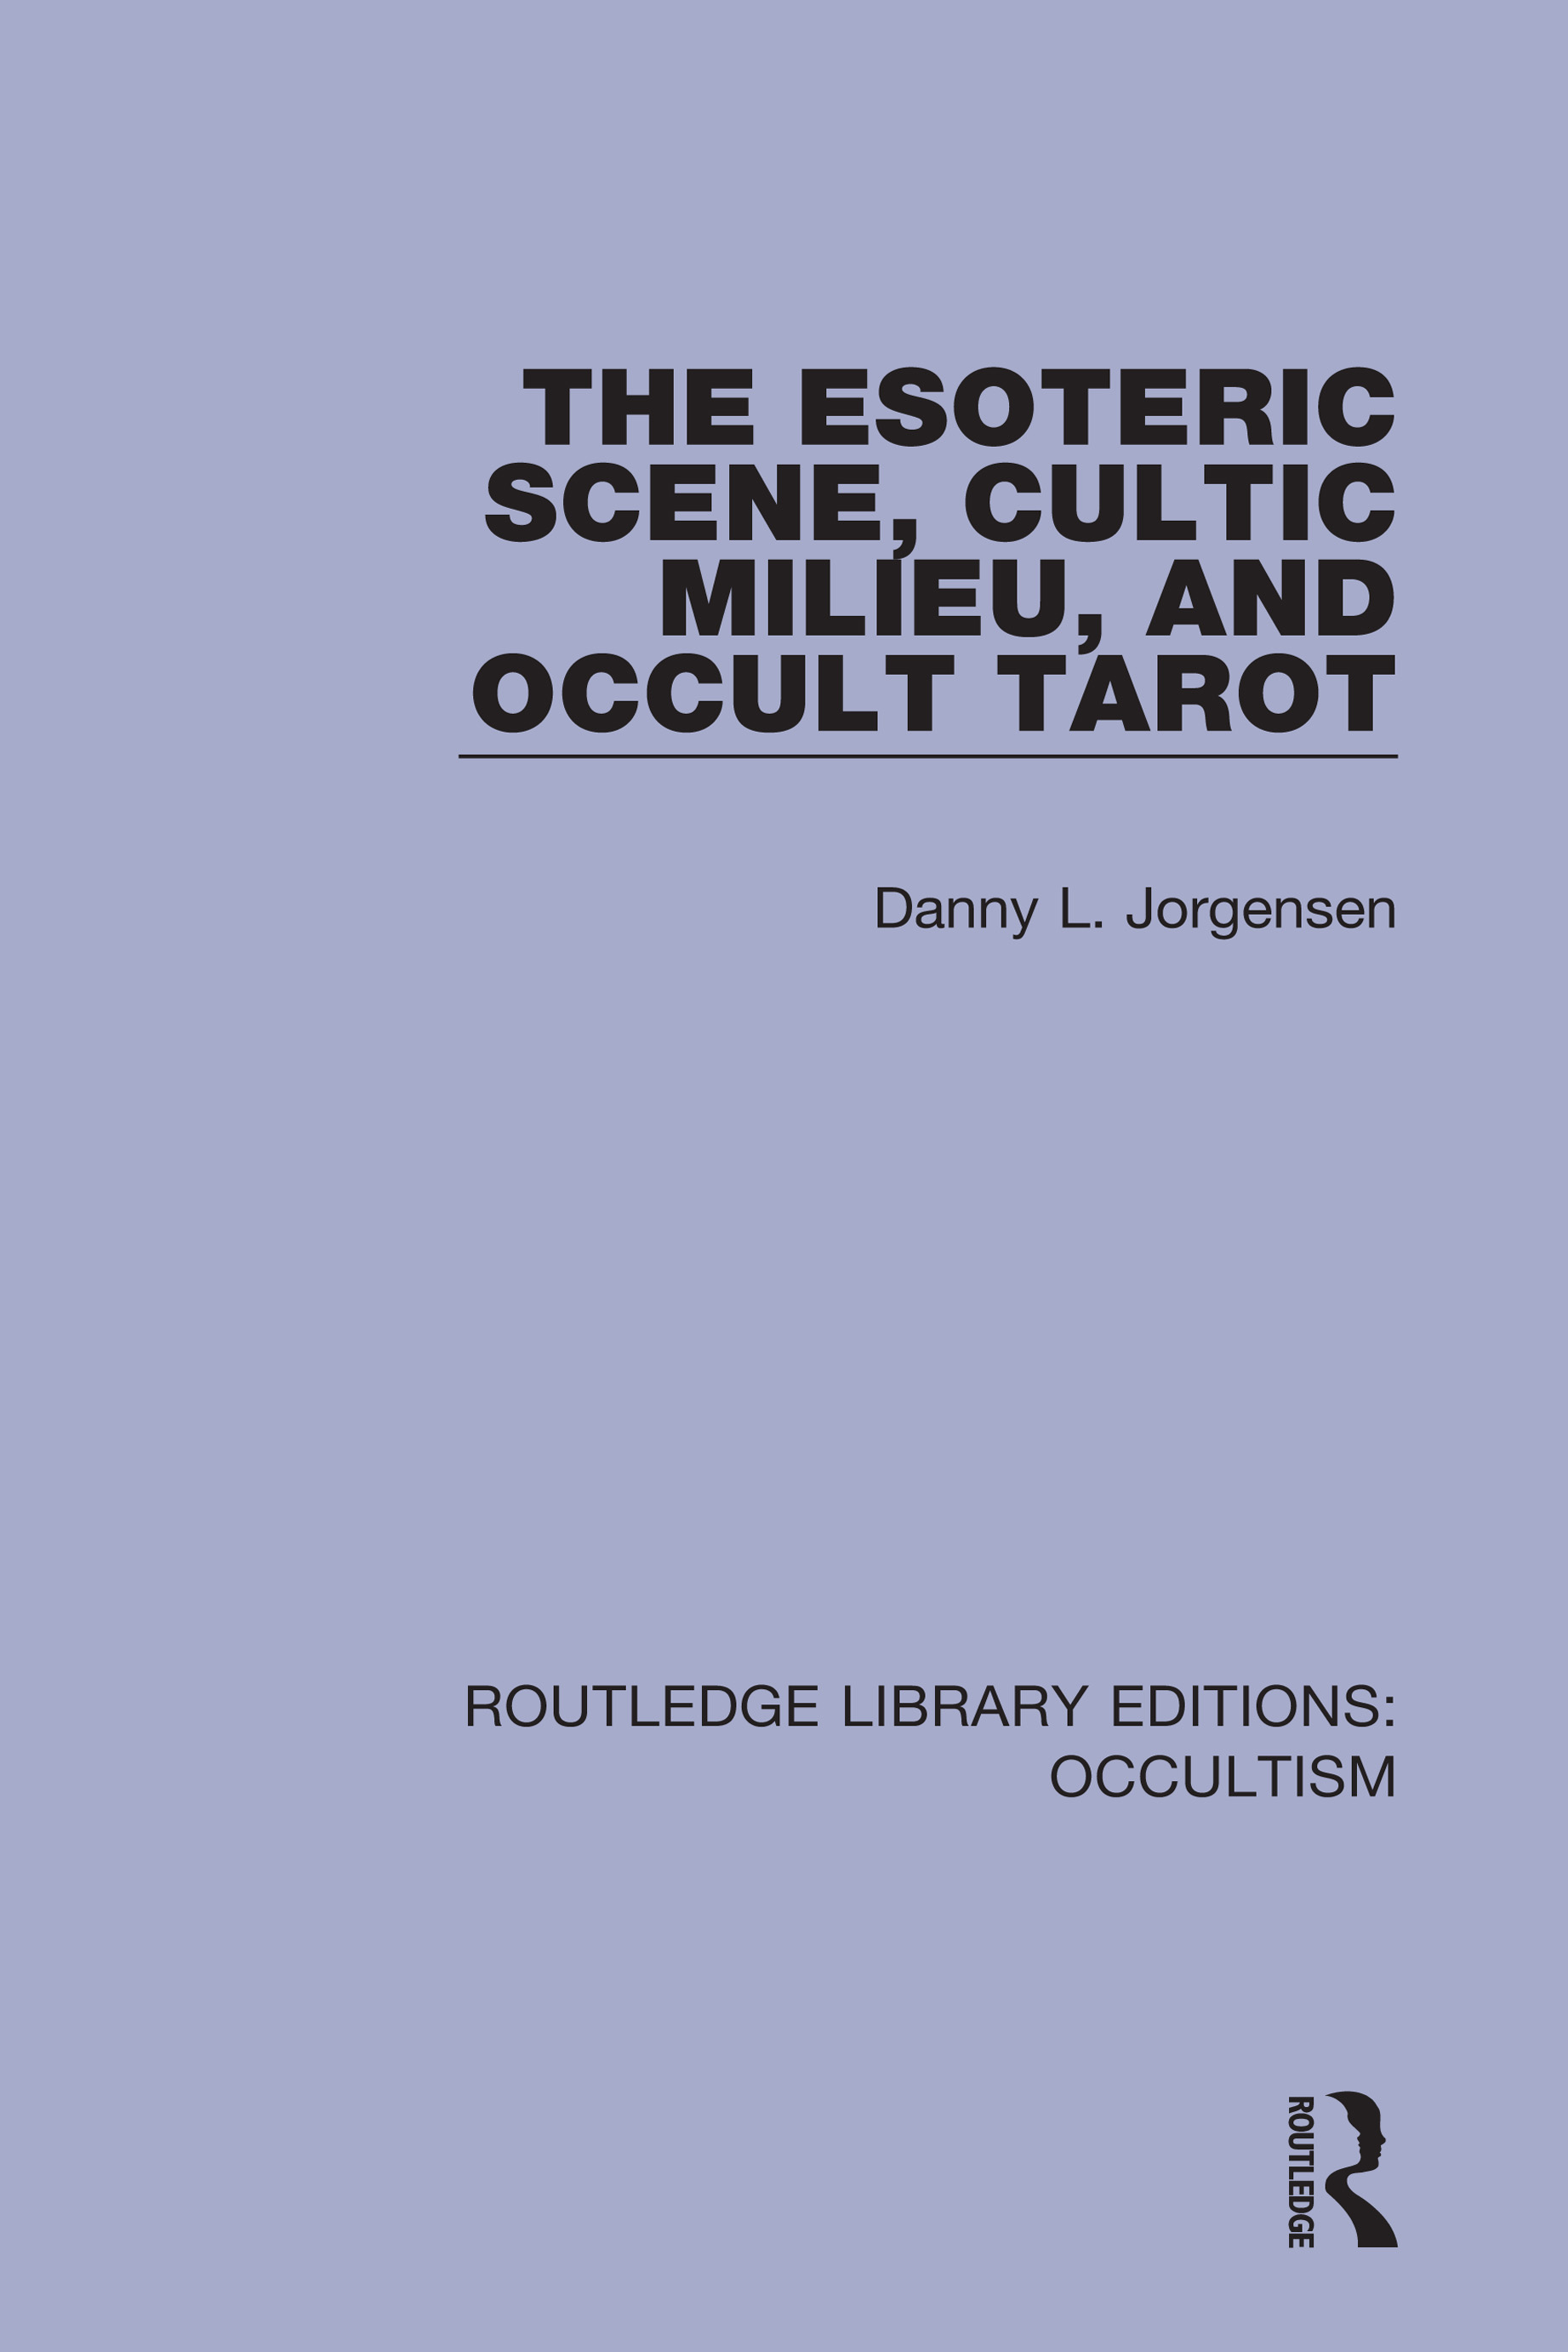 The Esoteric Scene, Cultic Milieu, and Occult Tarot book cover